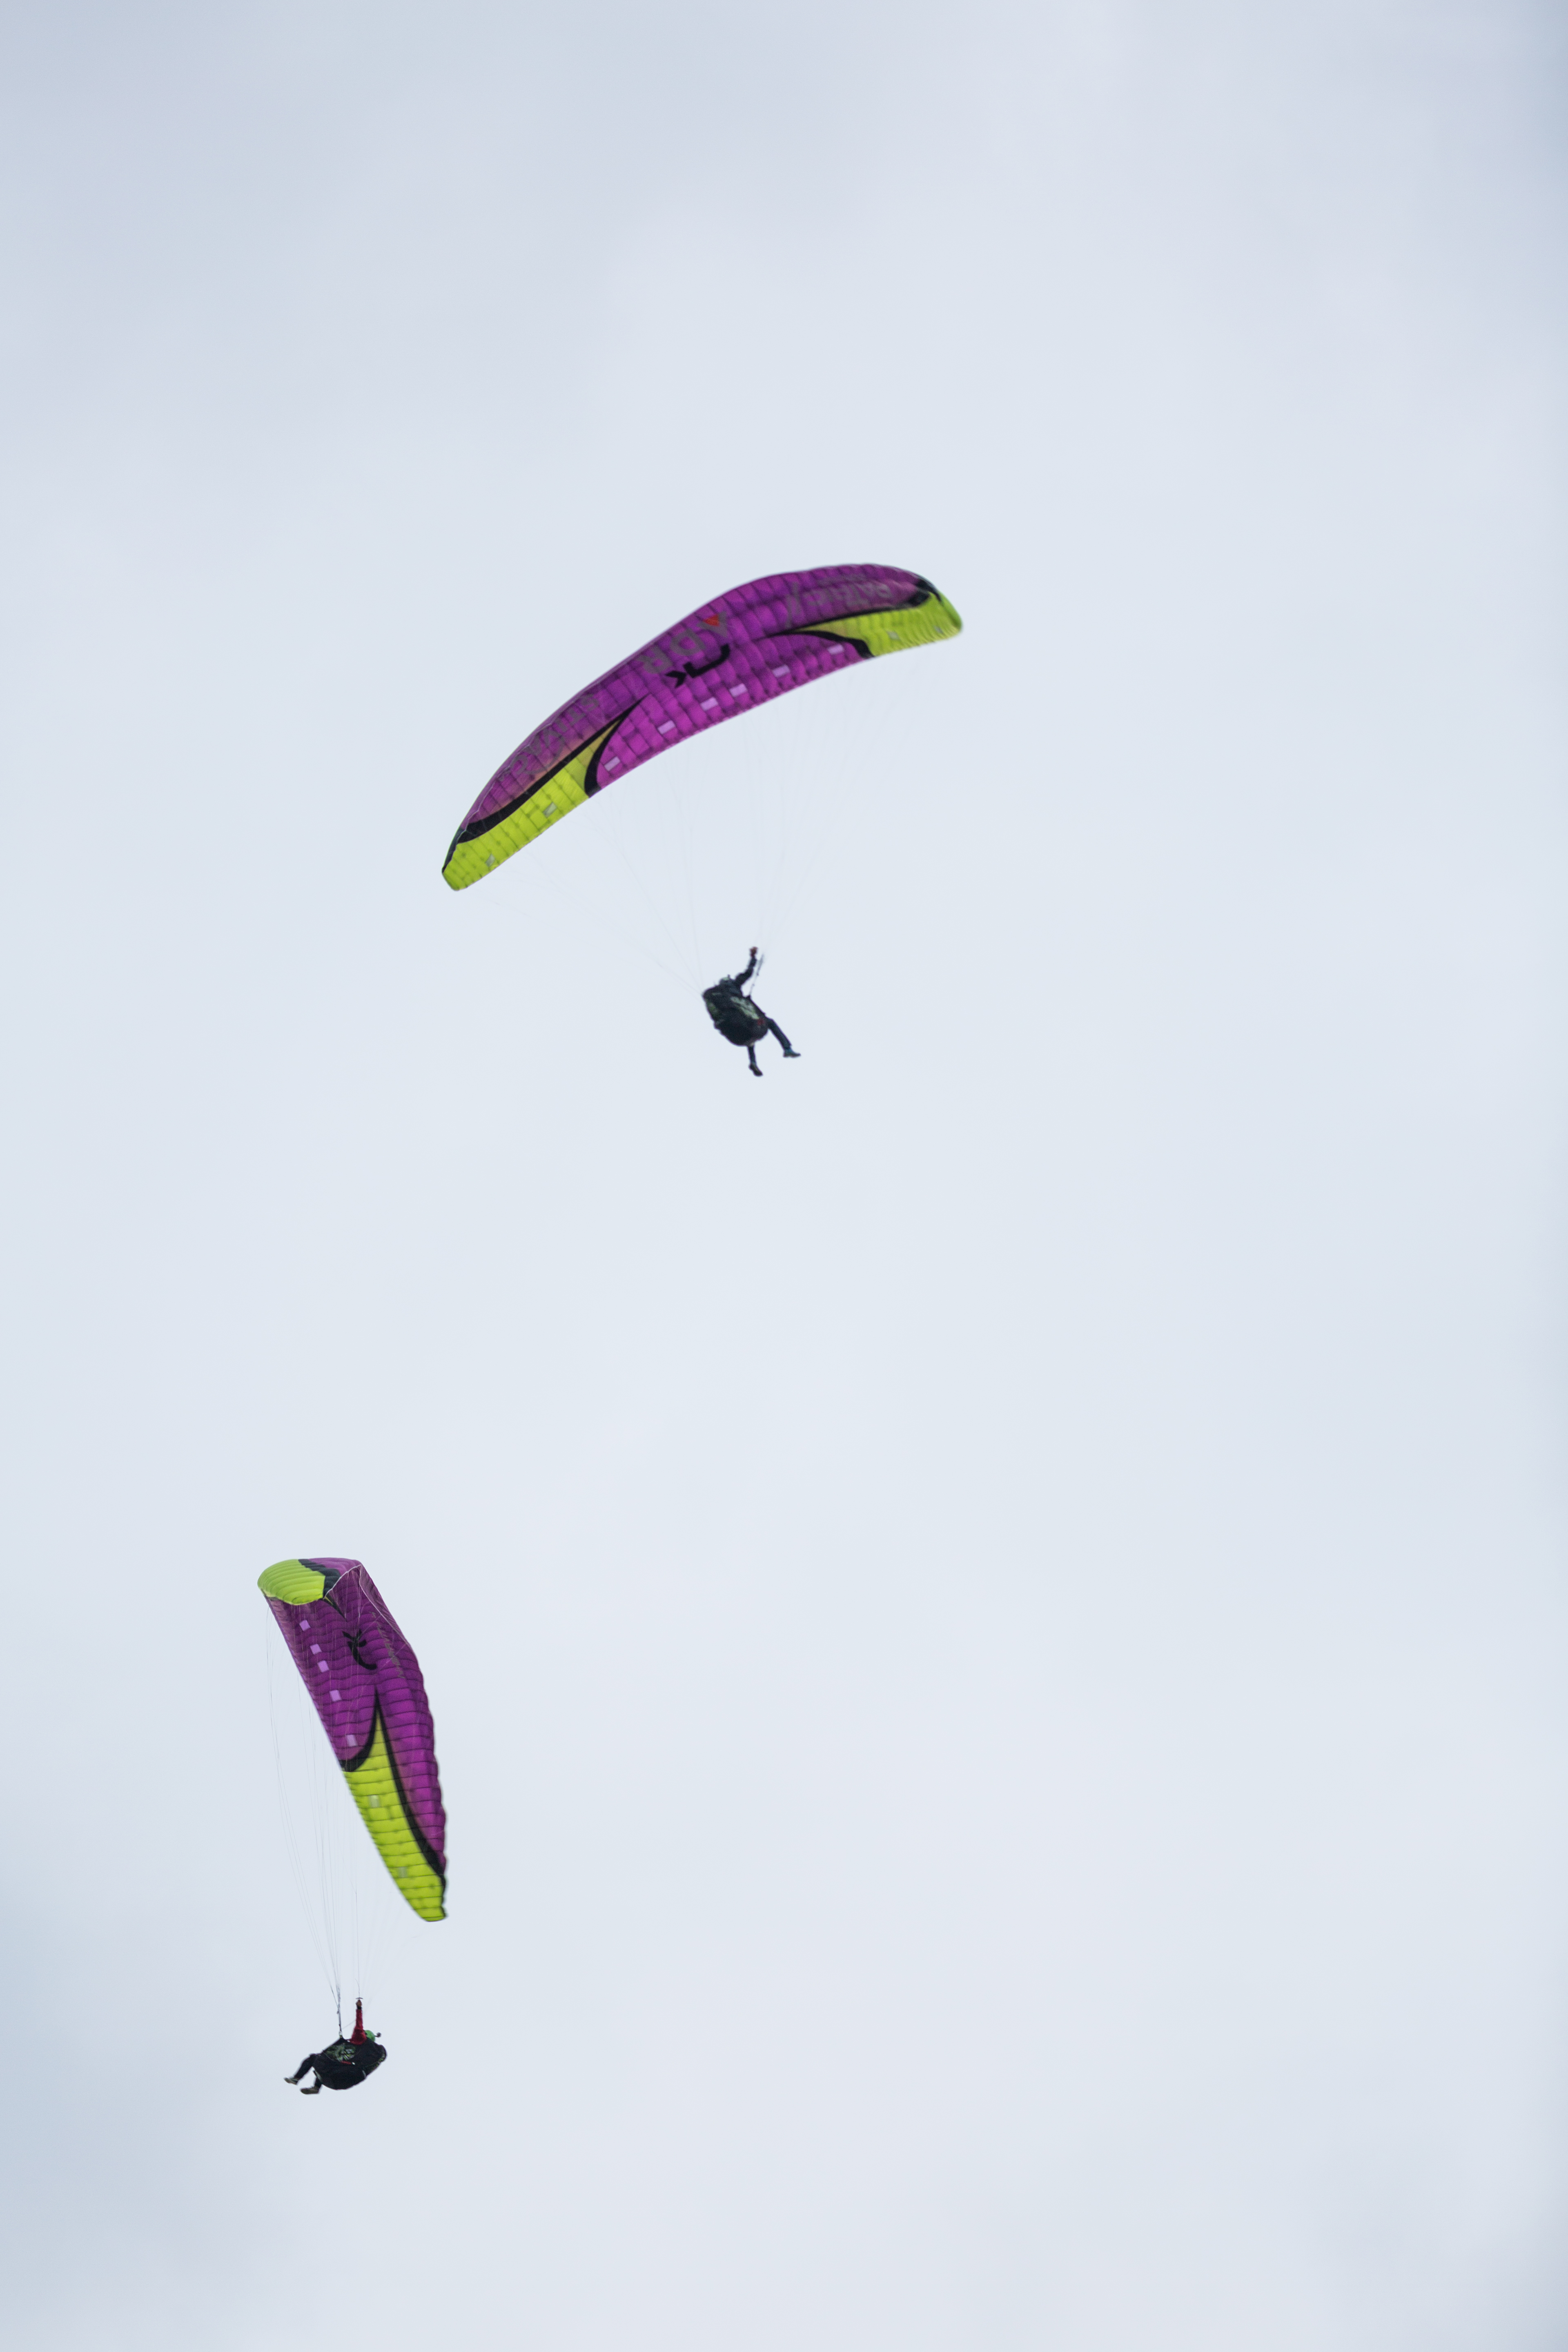 File:2017-07 Natural Games Paragliding 25 jpg - Wikimedia Commons